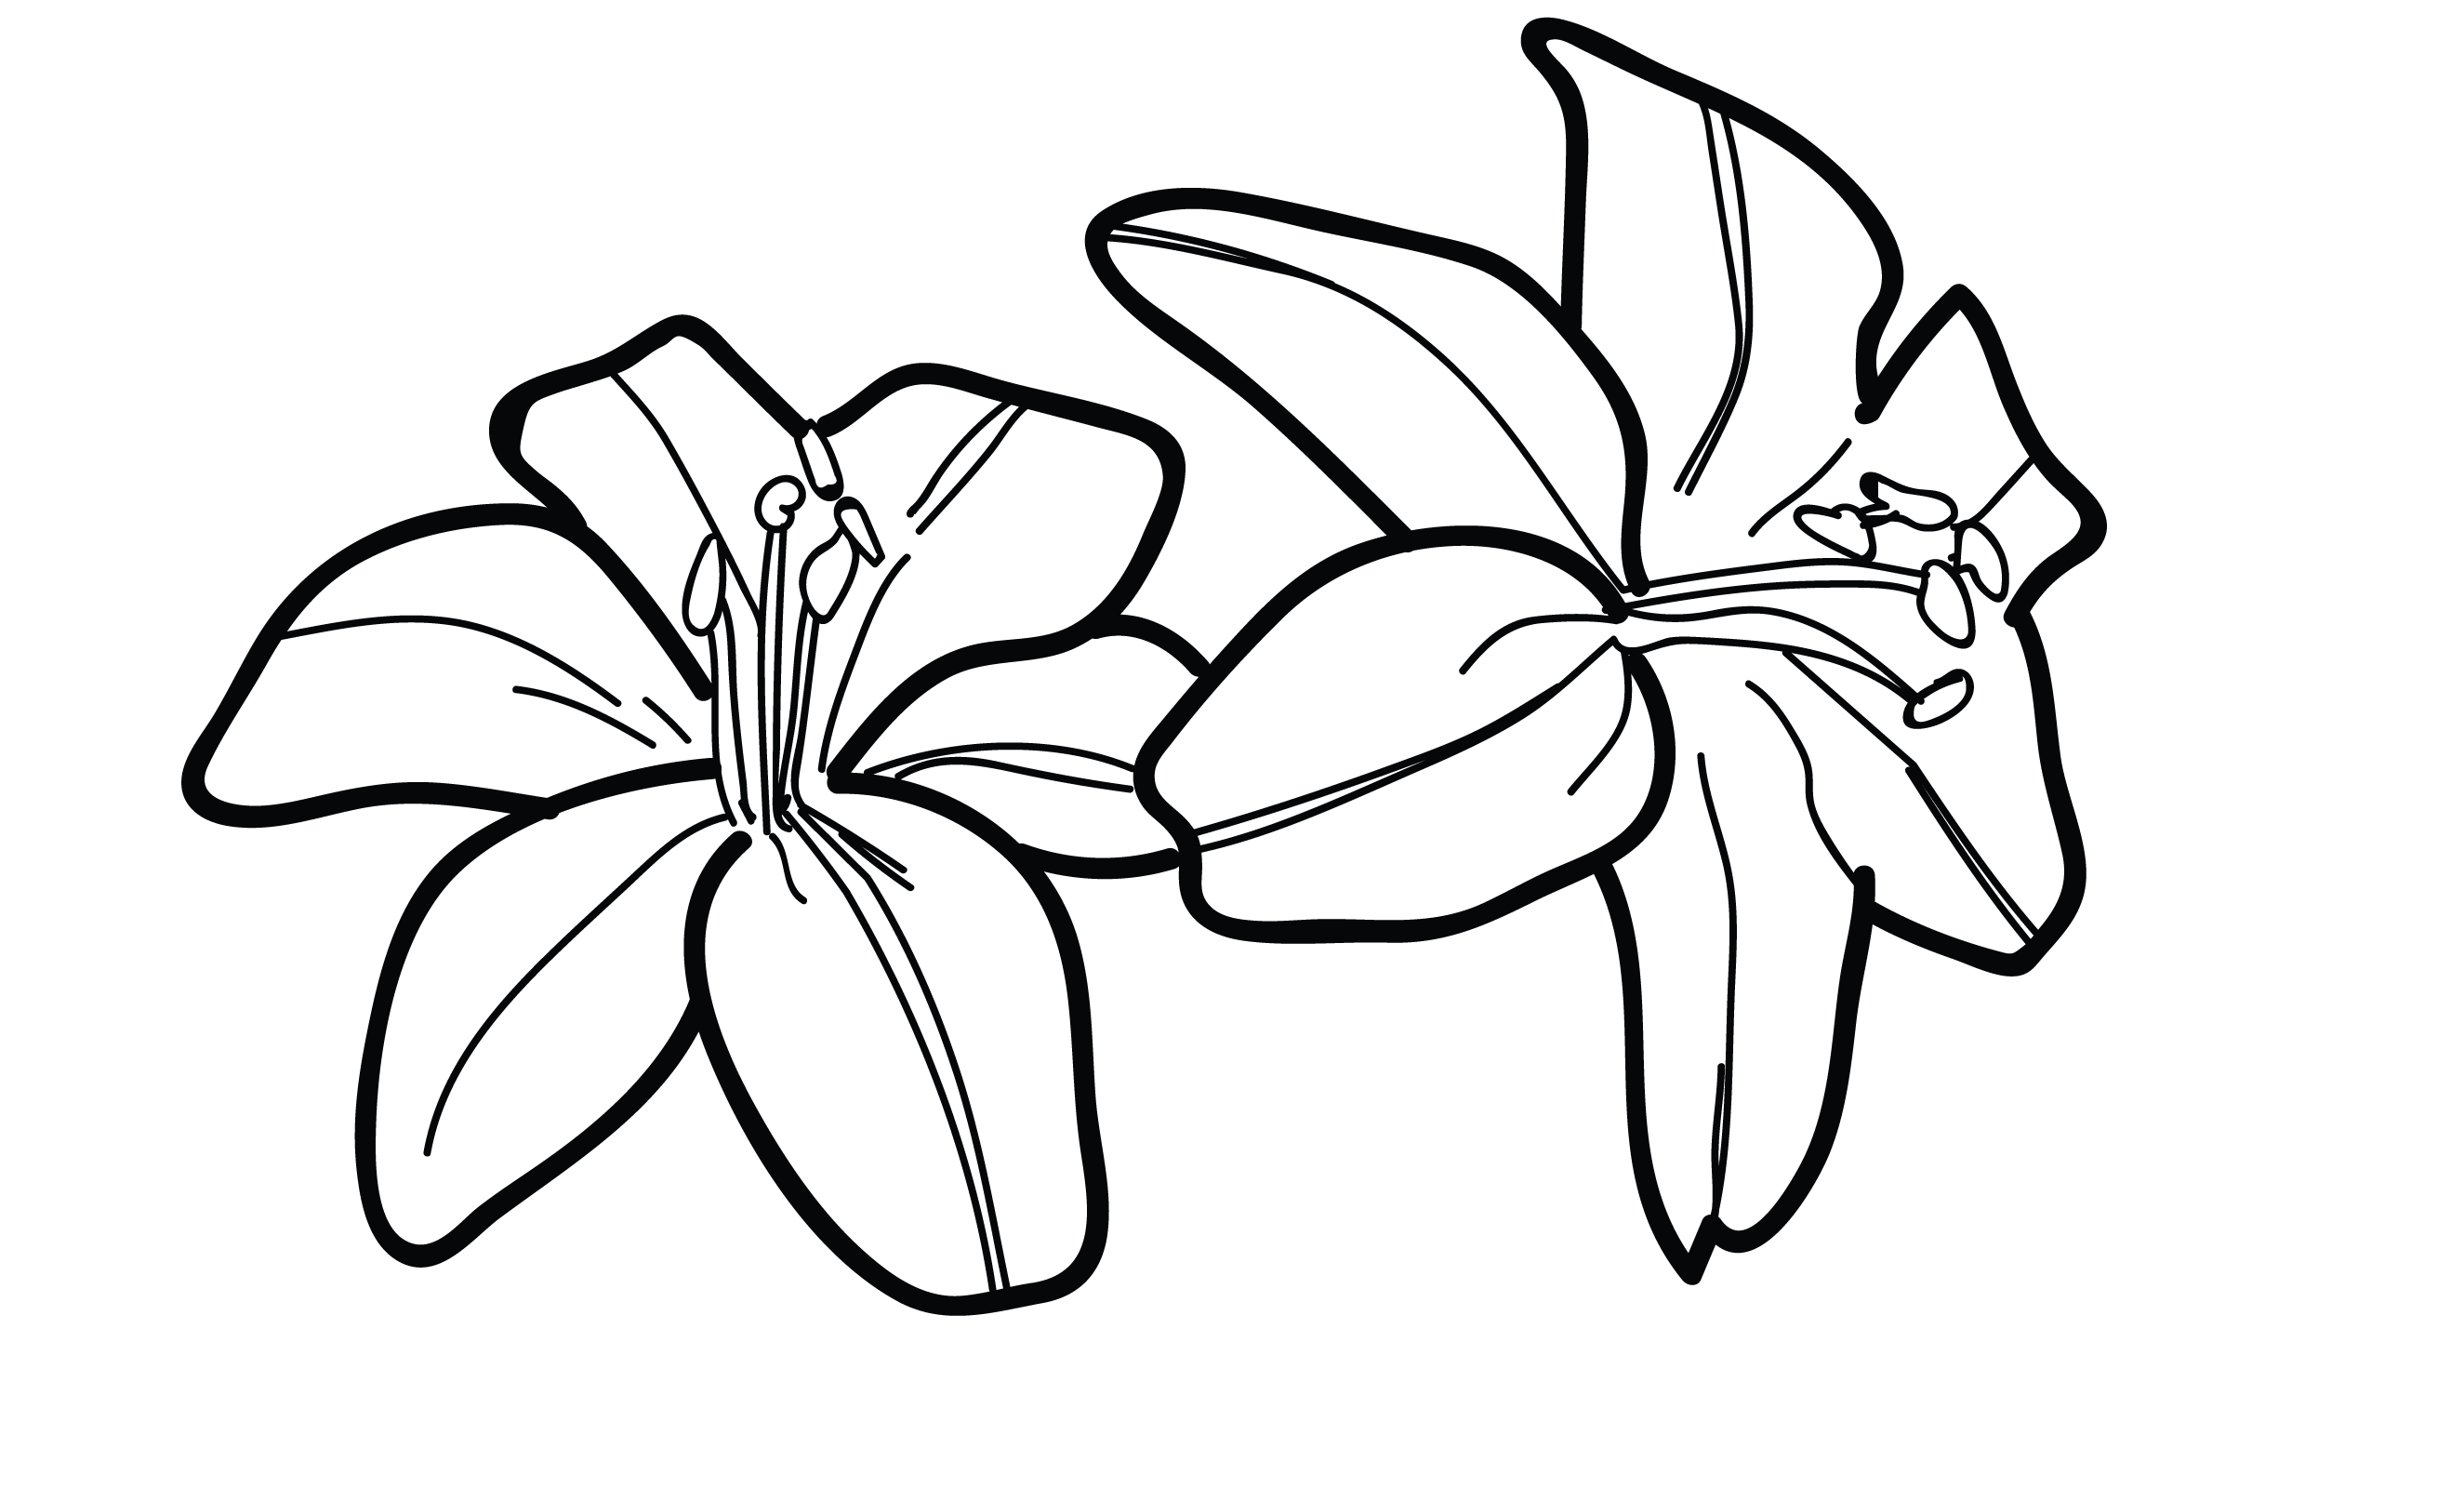 Water lily flower drawing at getdrawings free for personal use 2650x1600 tiger lily flower drawing water lilies tattoos designs bouquet izmirmasajfo